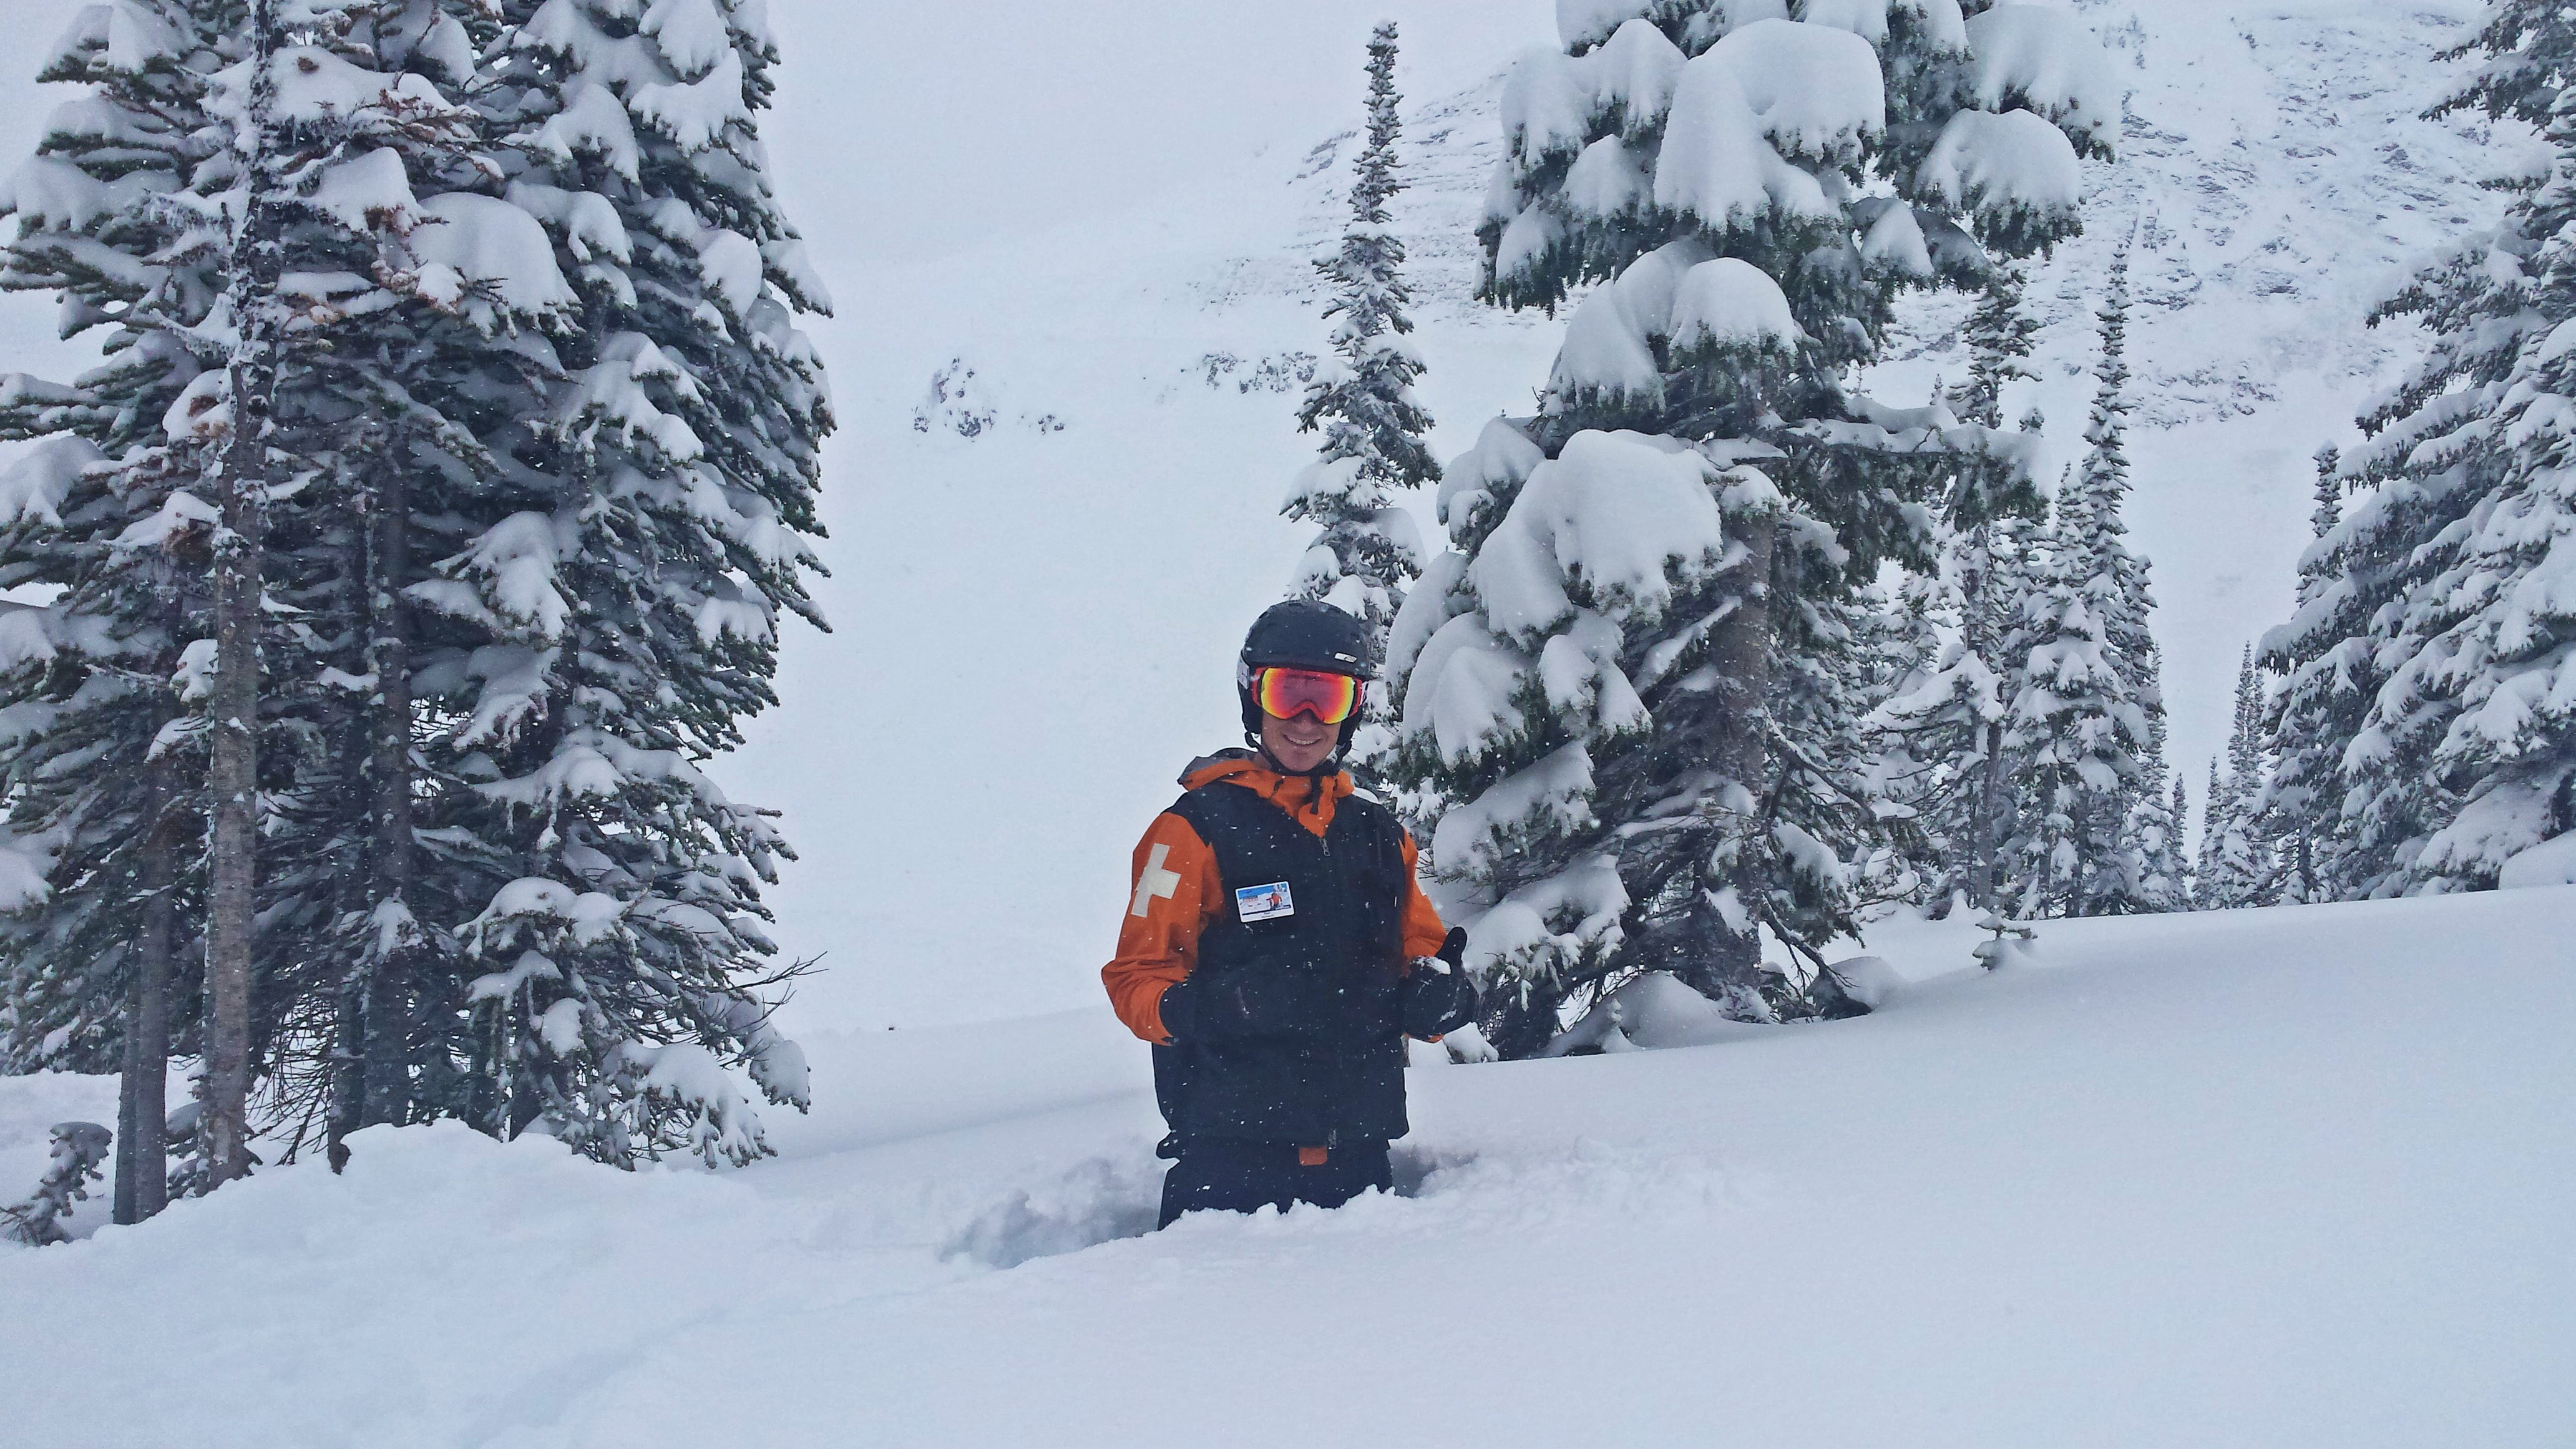 kicking up a storm for you - kicking horse mountain resort is